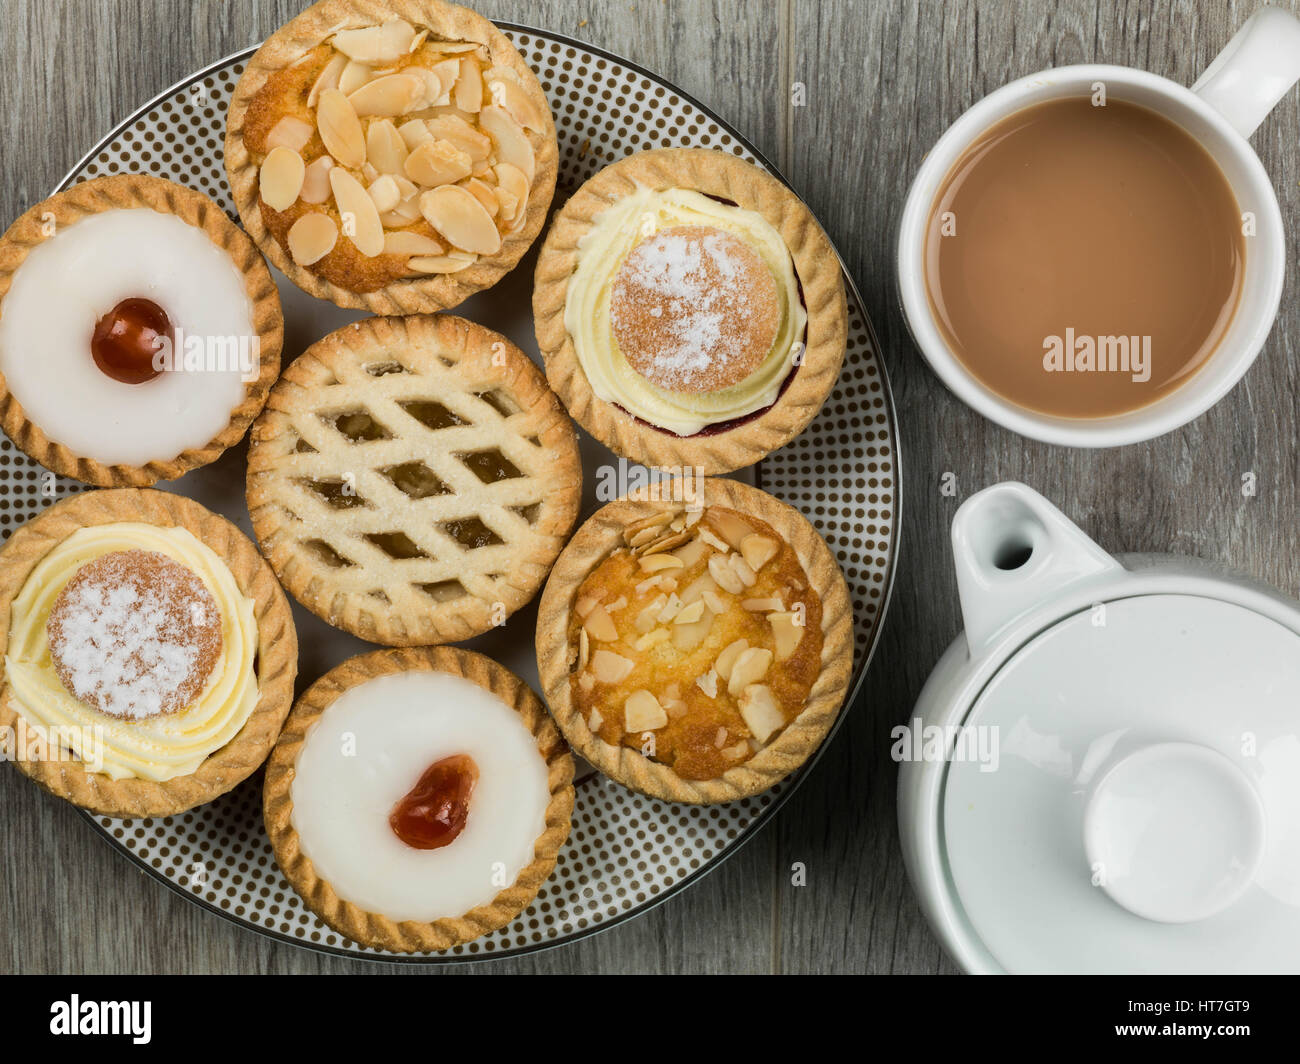 Plate of Assorted Individual Dessert Cakes or Tarts With a Pot of Tea - Stock Image